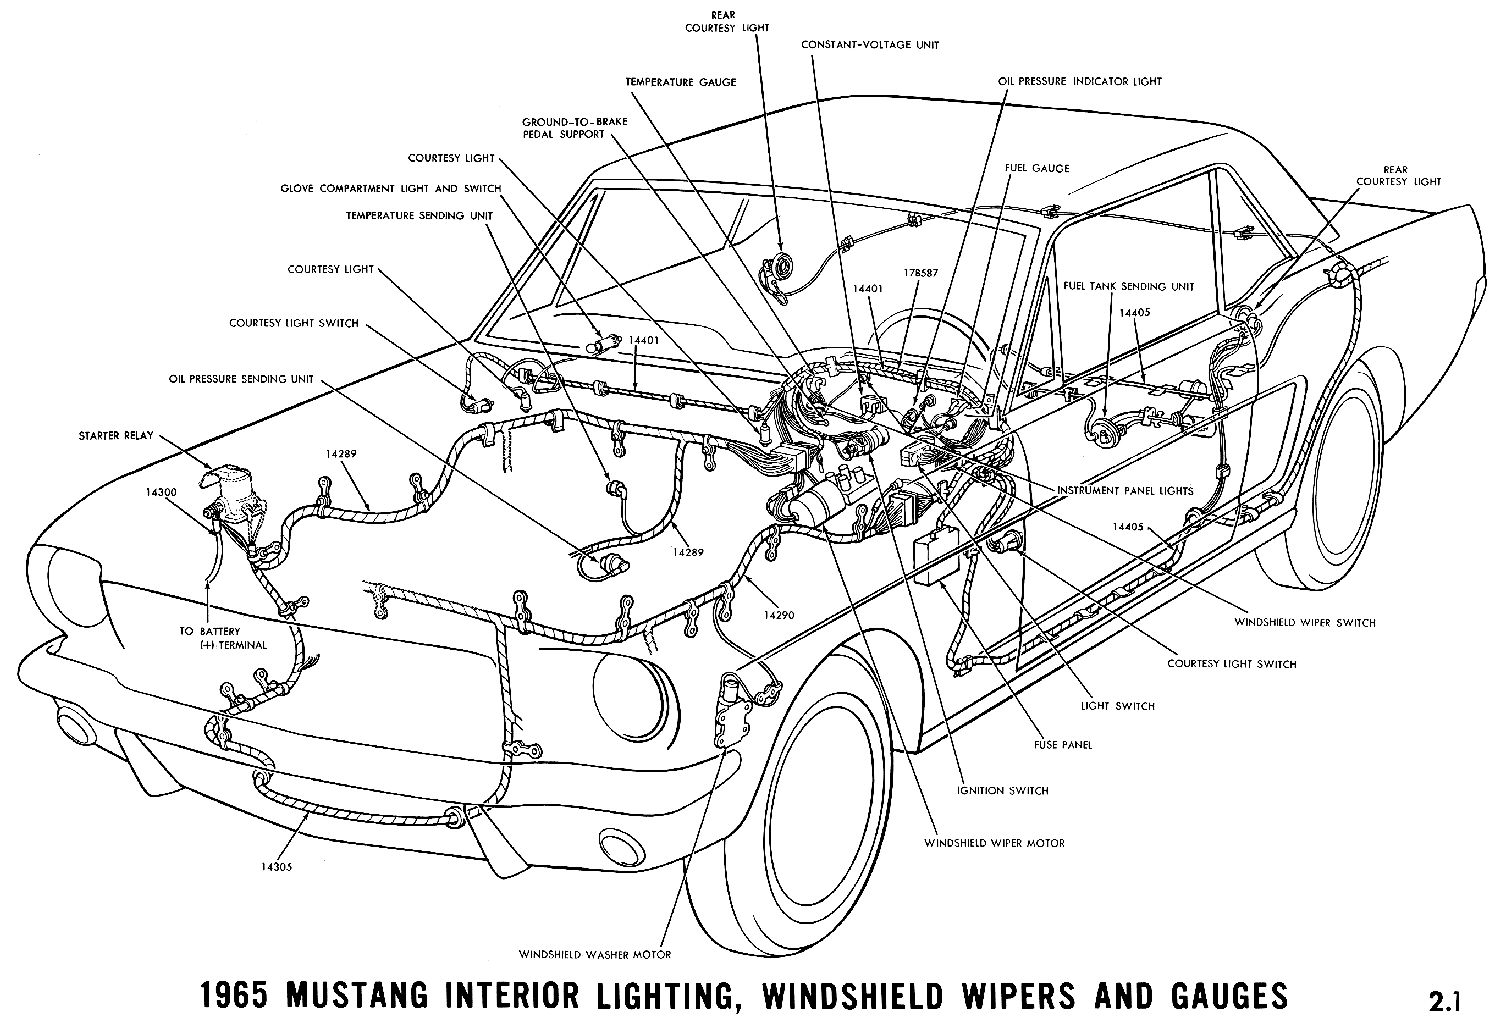 1965f 1965 mustang wiring diagrams average joe restoration mustang parts diagram at bayanpartner.co